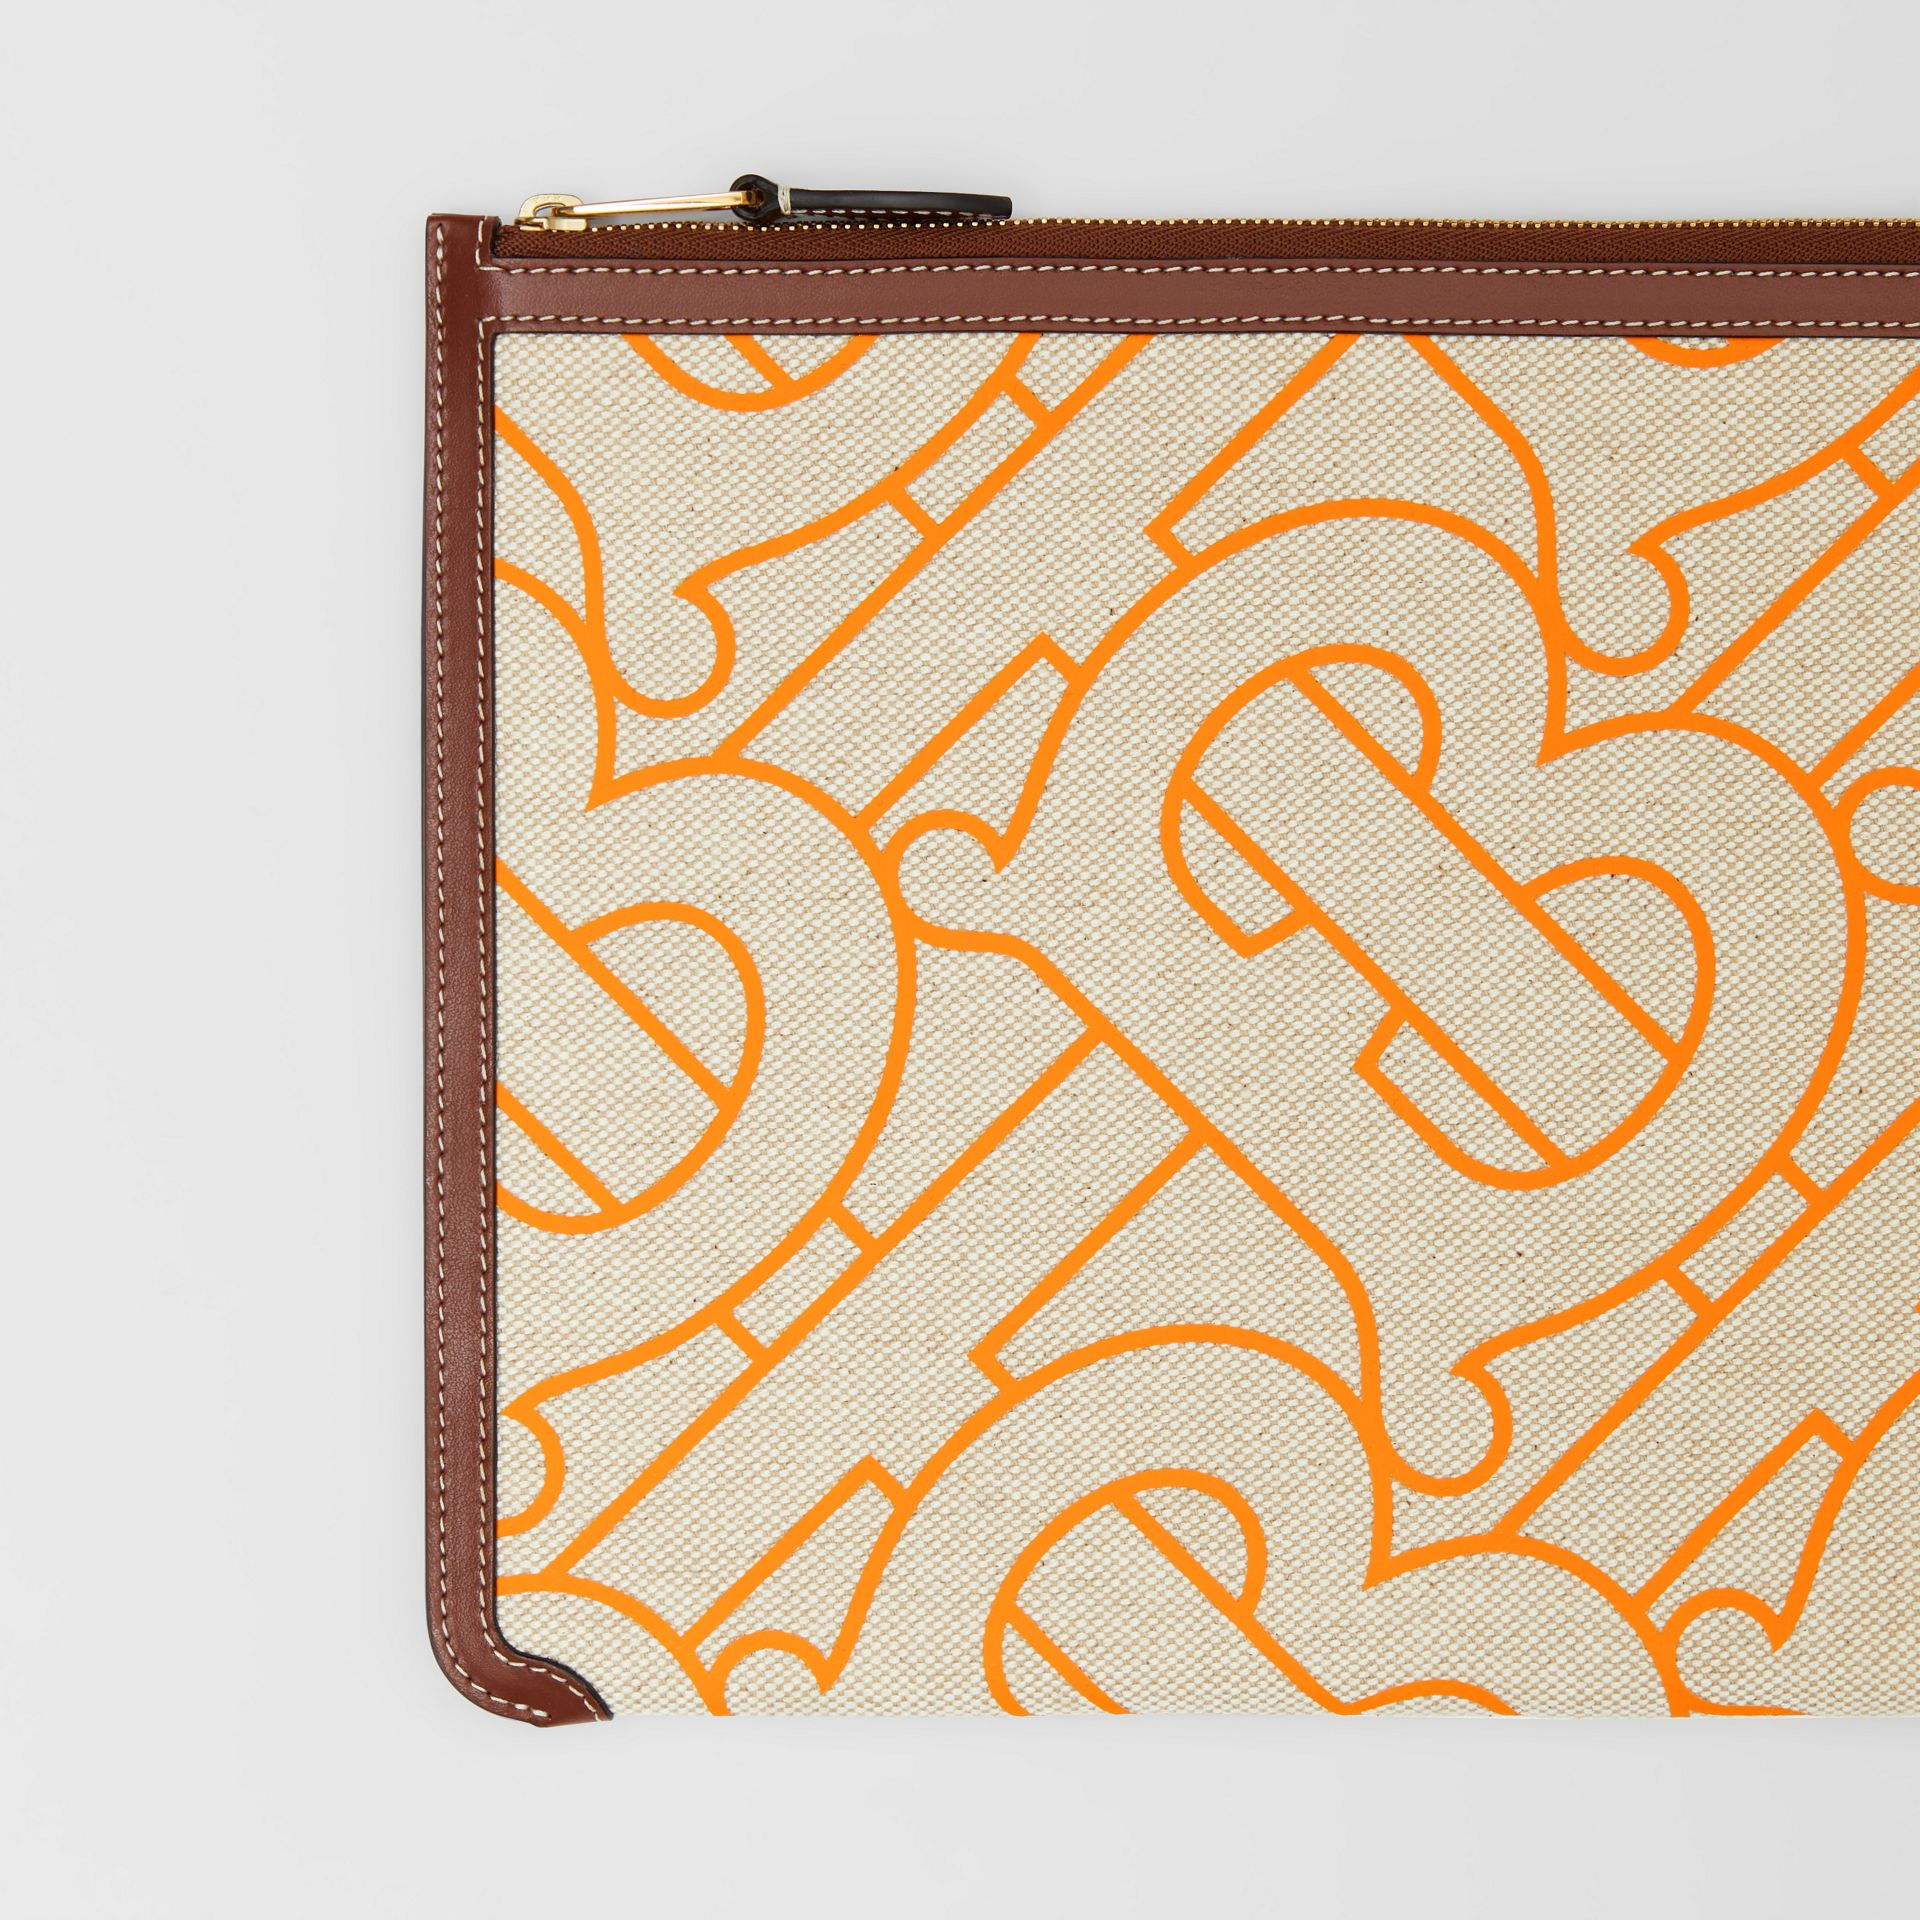 Monogram Motif Canvas and Leather Pouch in Natural/orange - Women | Burberry United Kingdom - gallery image 1